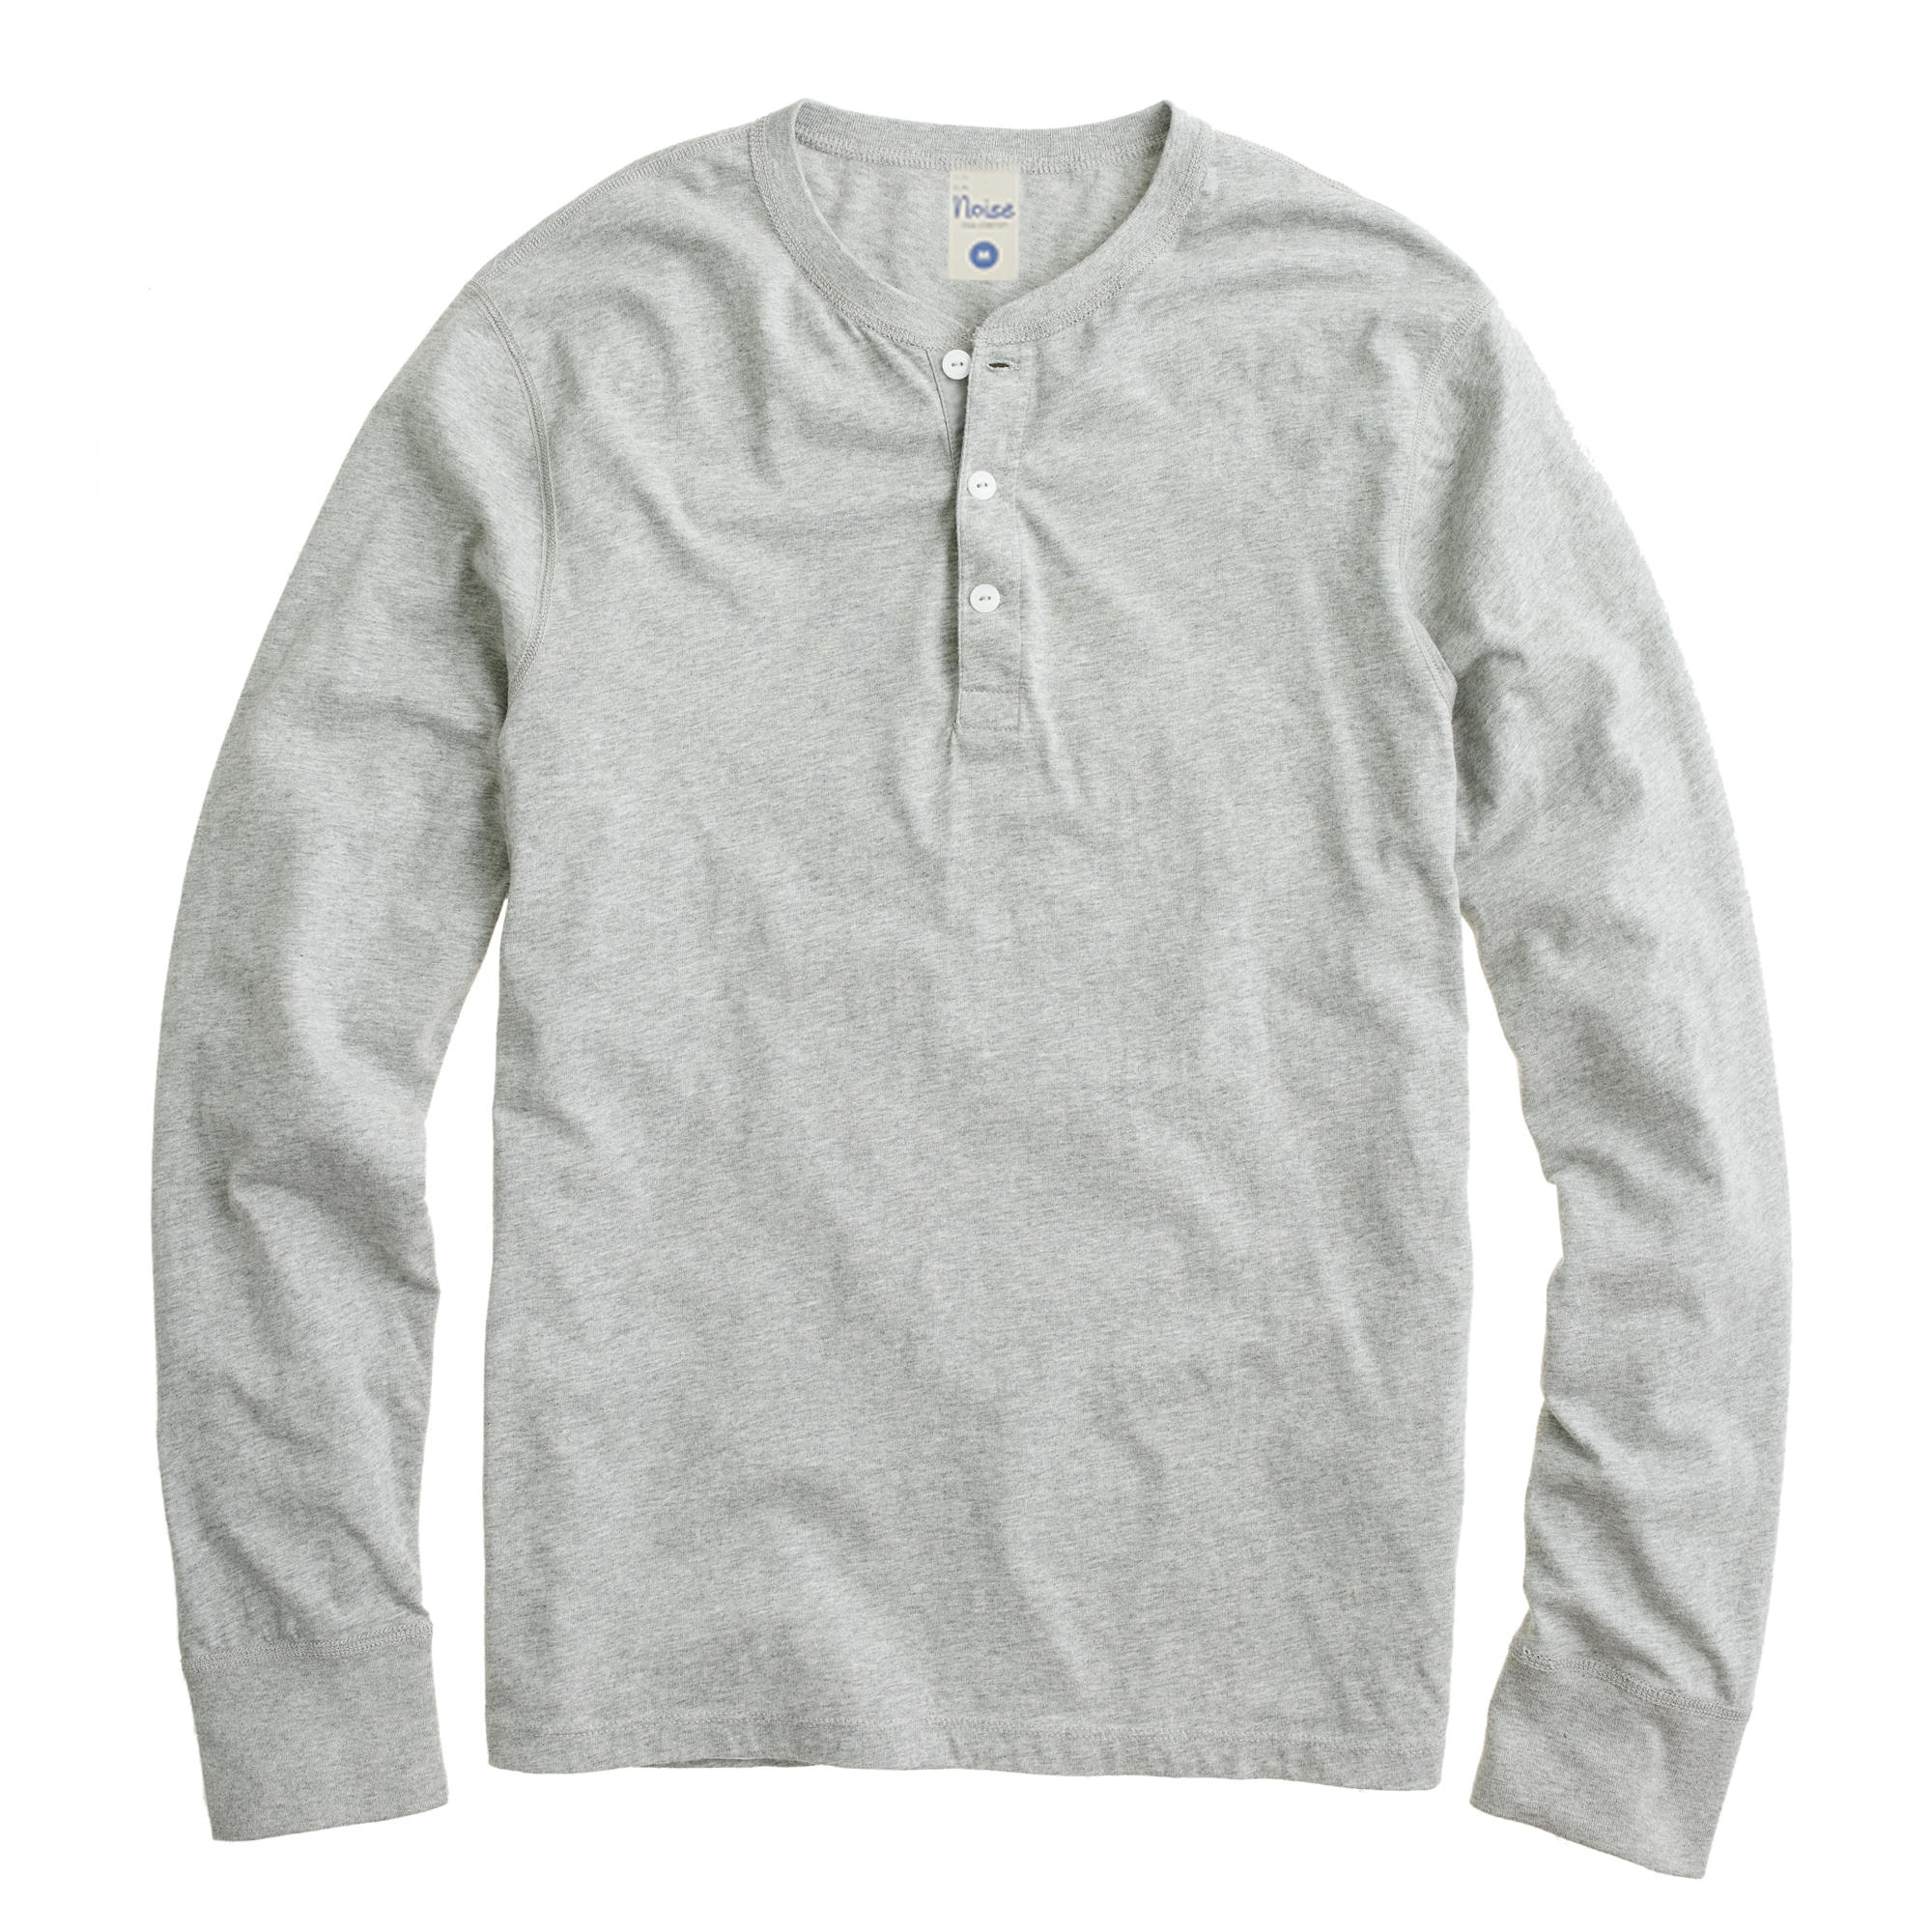 Cotton Heather Tee LS 02